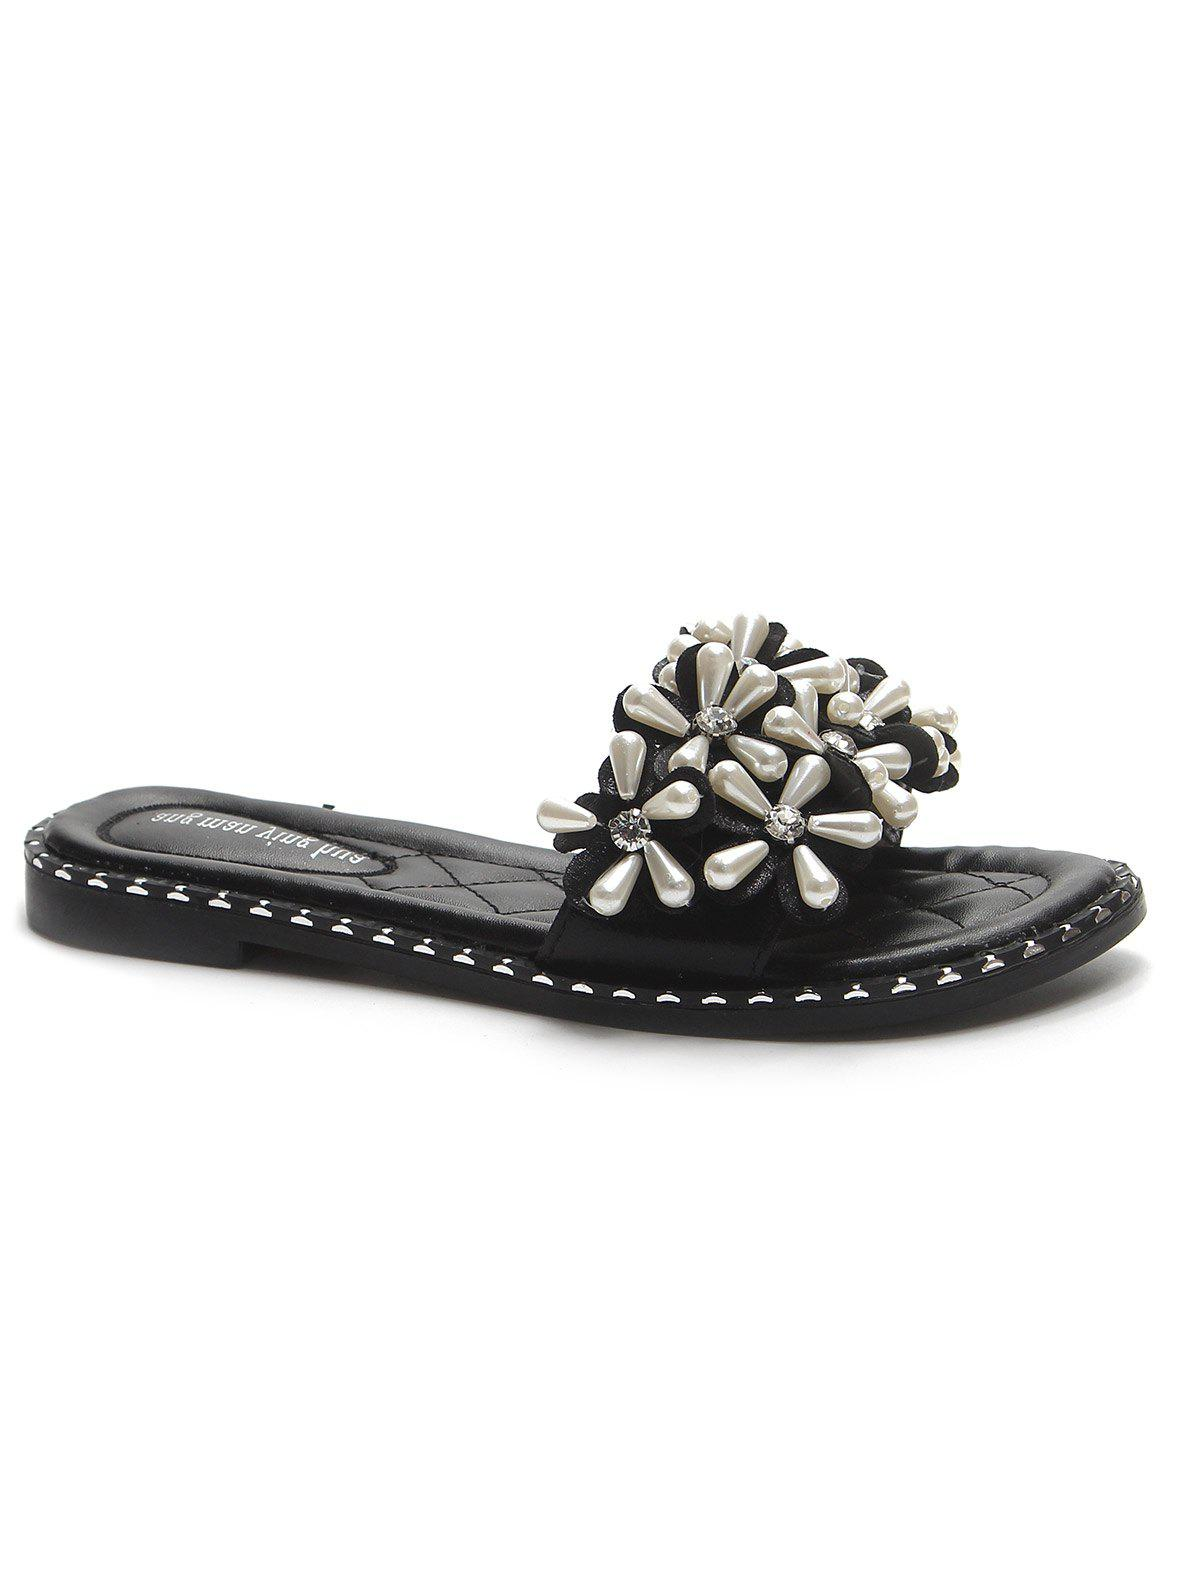 Unique Flat Heel Faux Pearls Leisure Slides